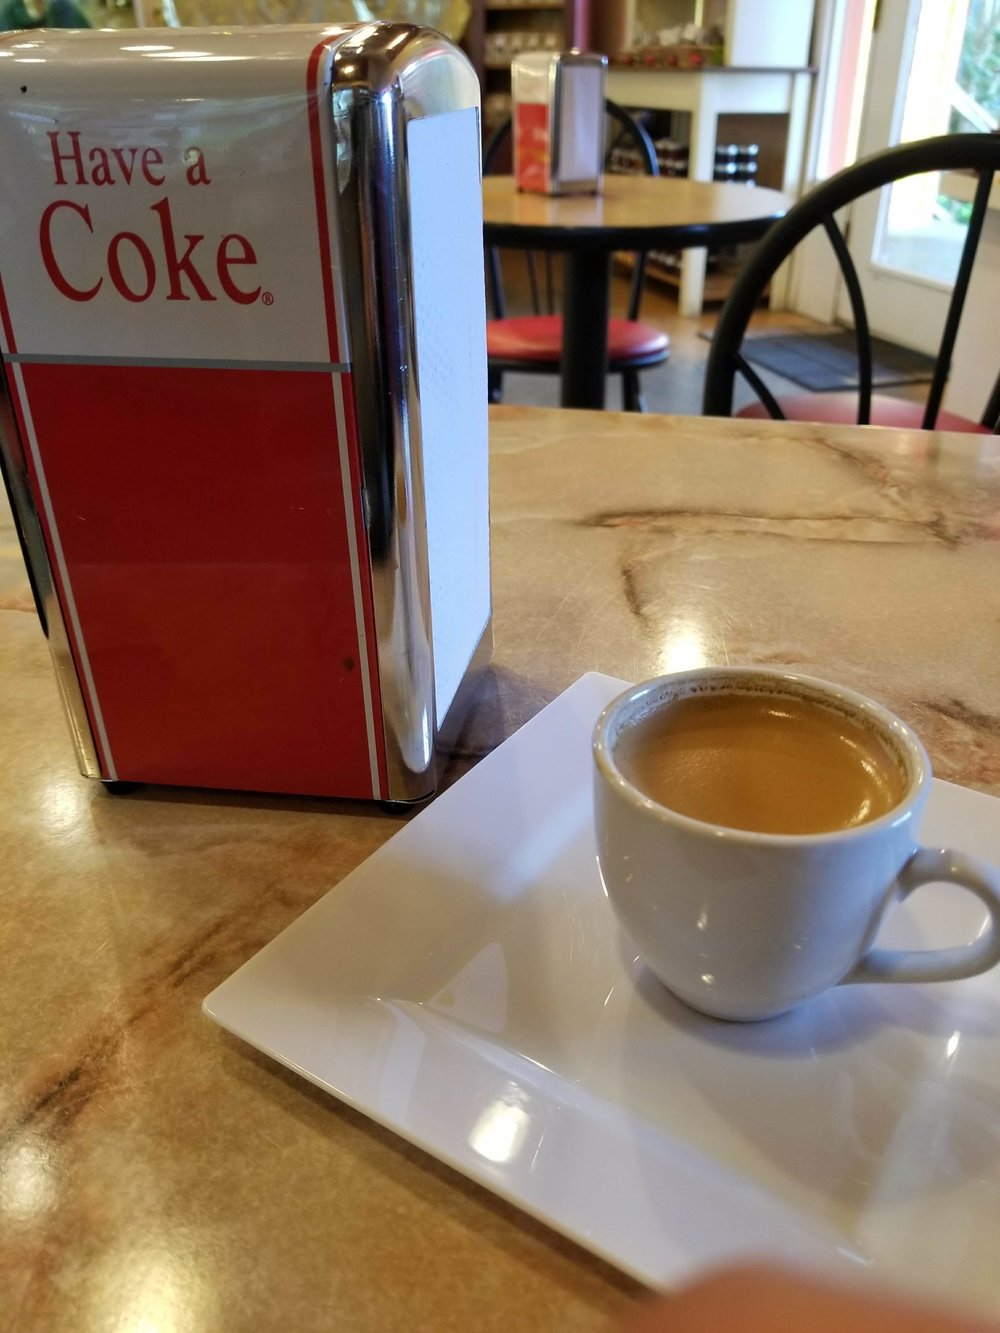 Sometimes just an espresso is enough...